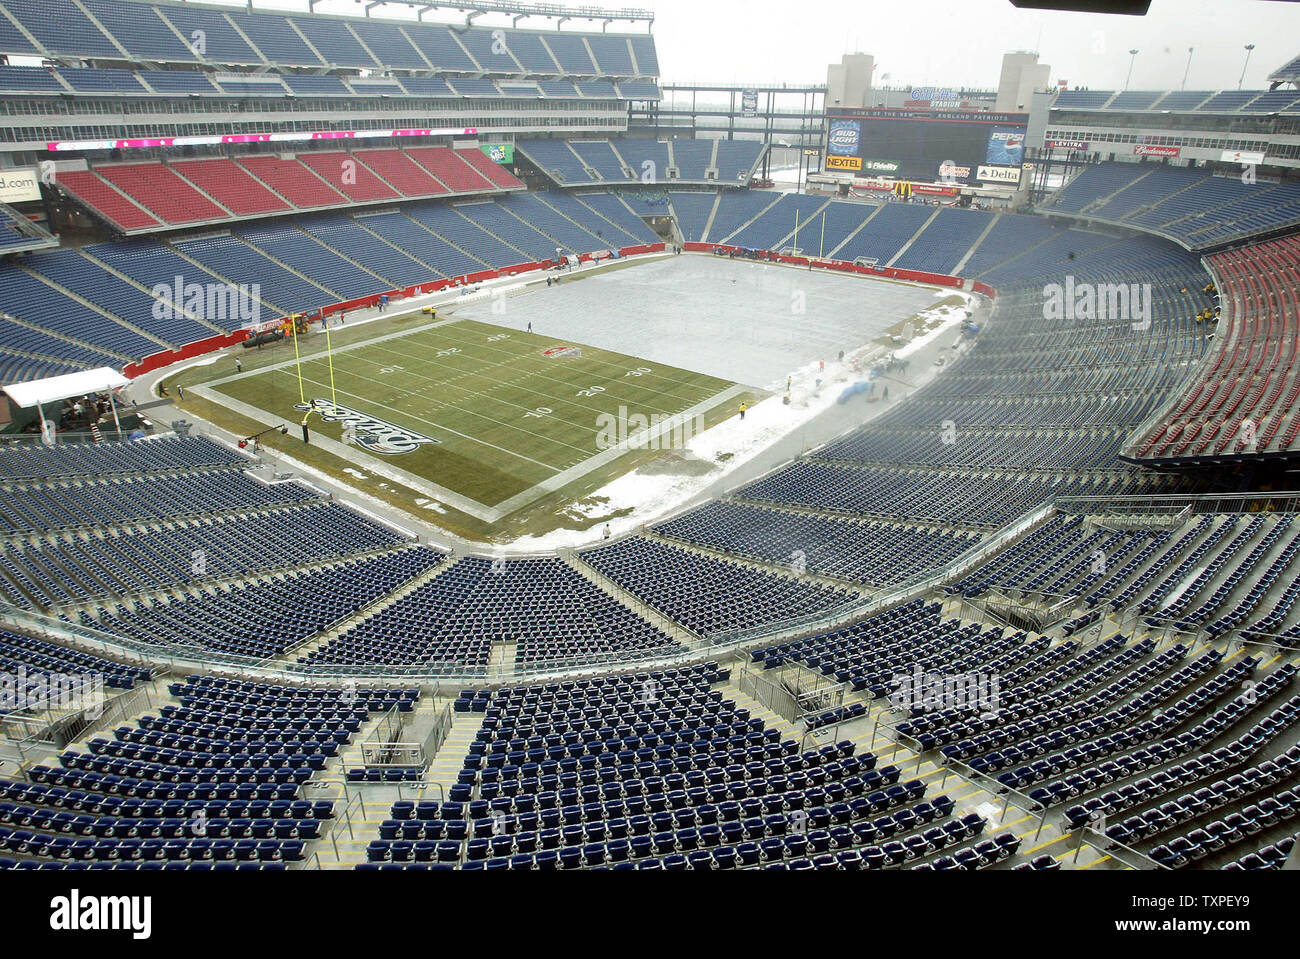 Ground crew members at Gillette Stadium remove a tarp from the west end of the field, as snow and light rain fall,  before the gates open to let fans into the Stadium for the AFC Championship Game, between the New England Patriots and Indianapolis Colts, Sunday, January 18, 2004, Foxboro, Mass, USA.  (UPI Photo / Steven E. Frischling) - Stock Image